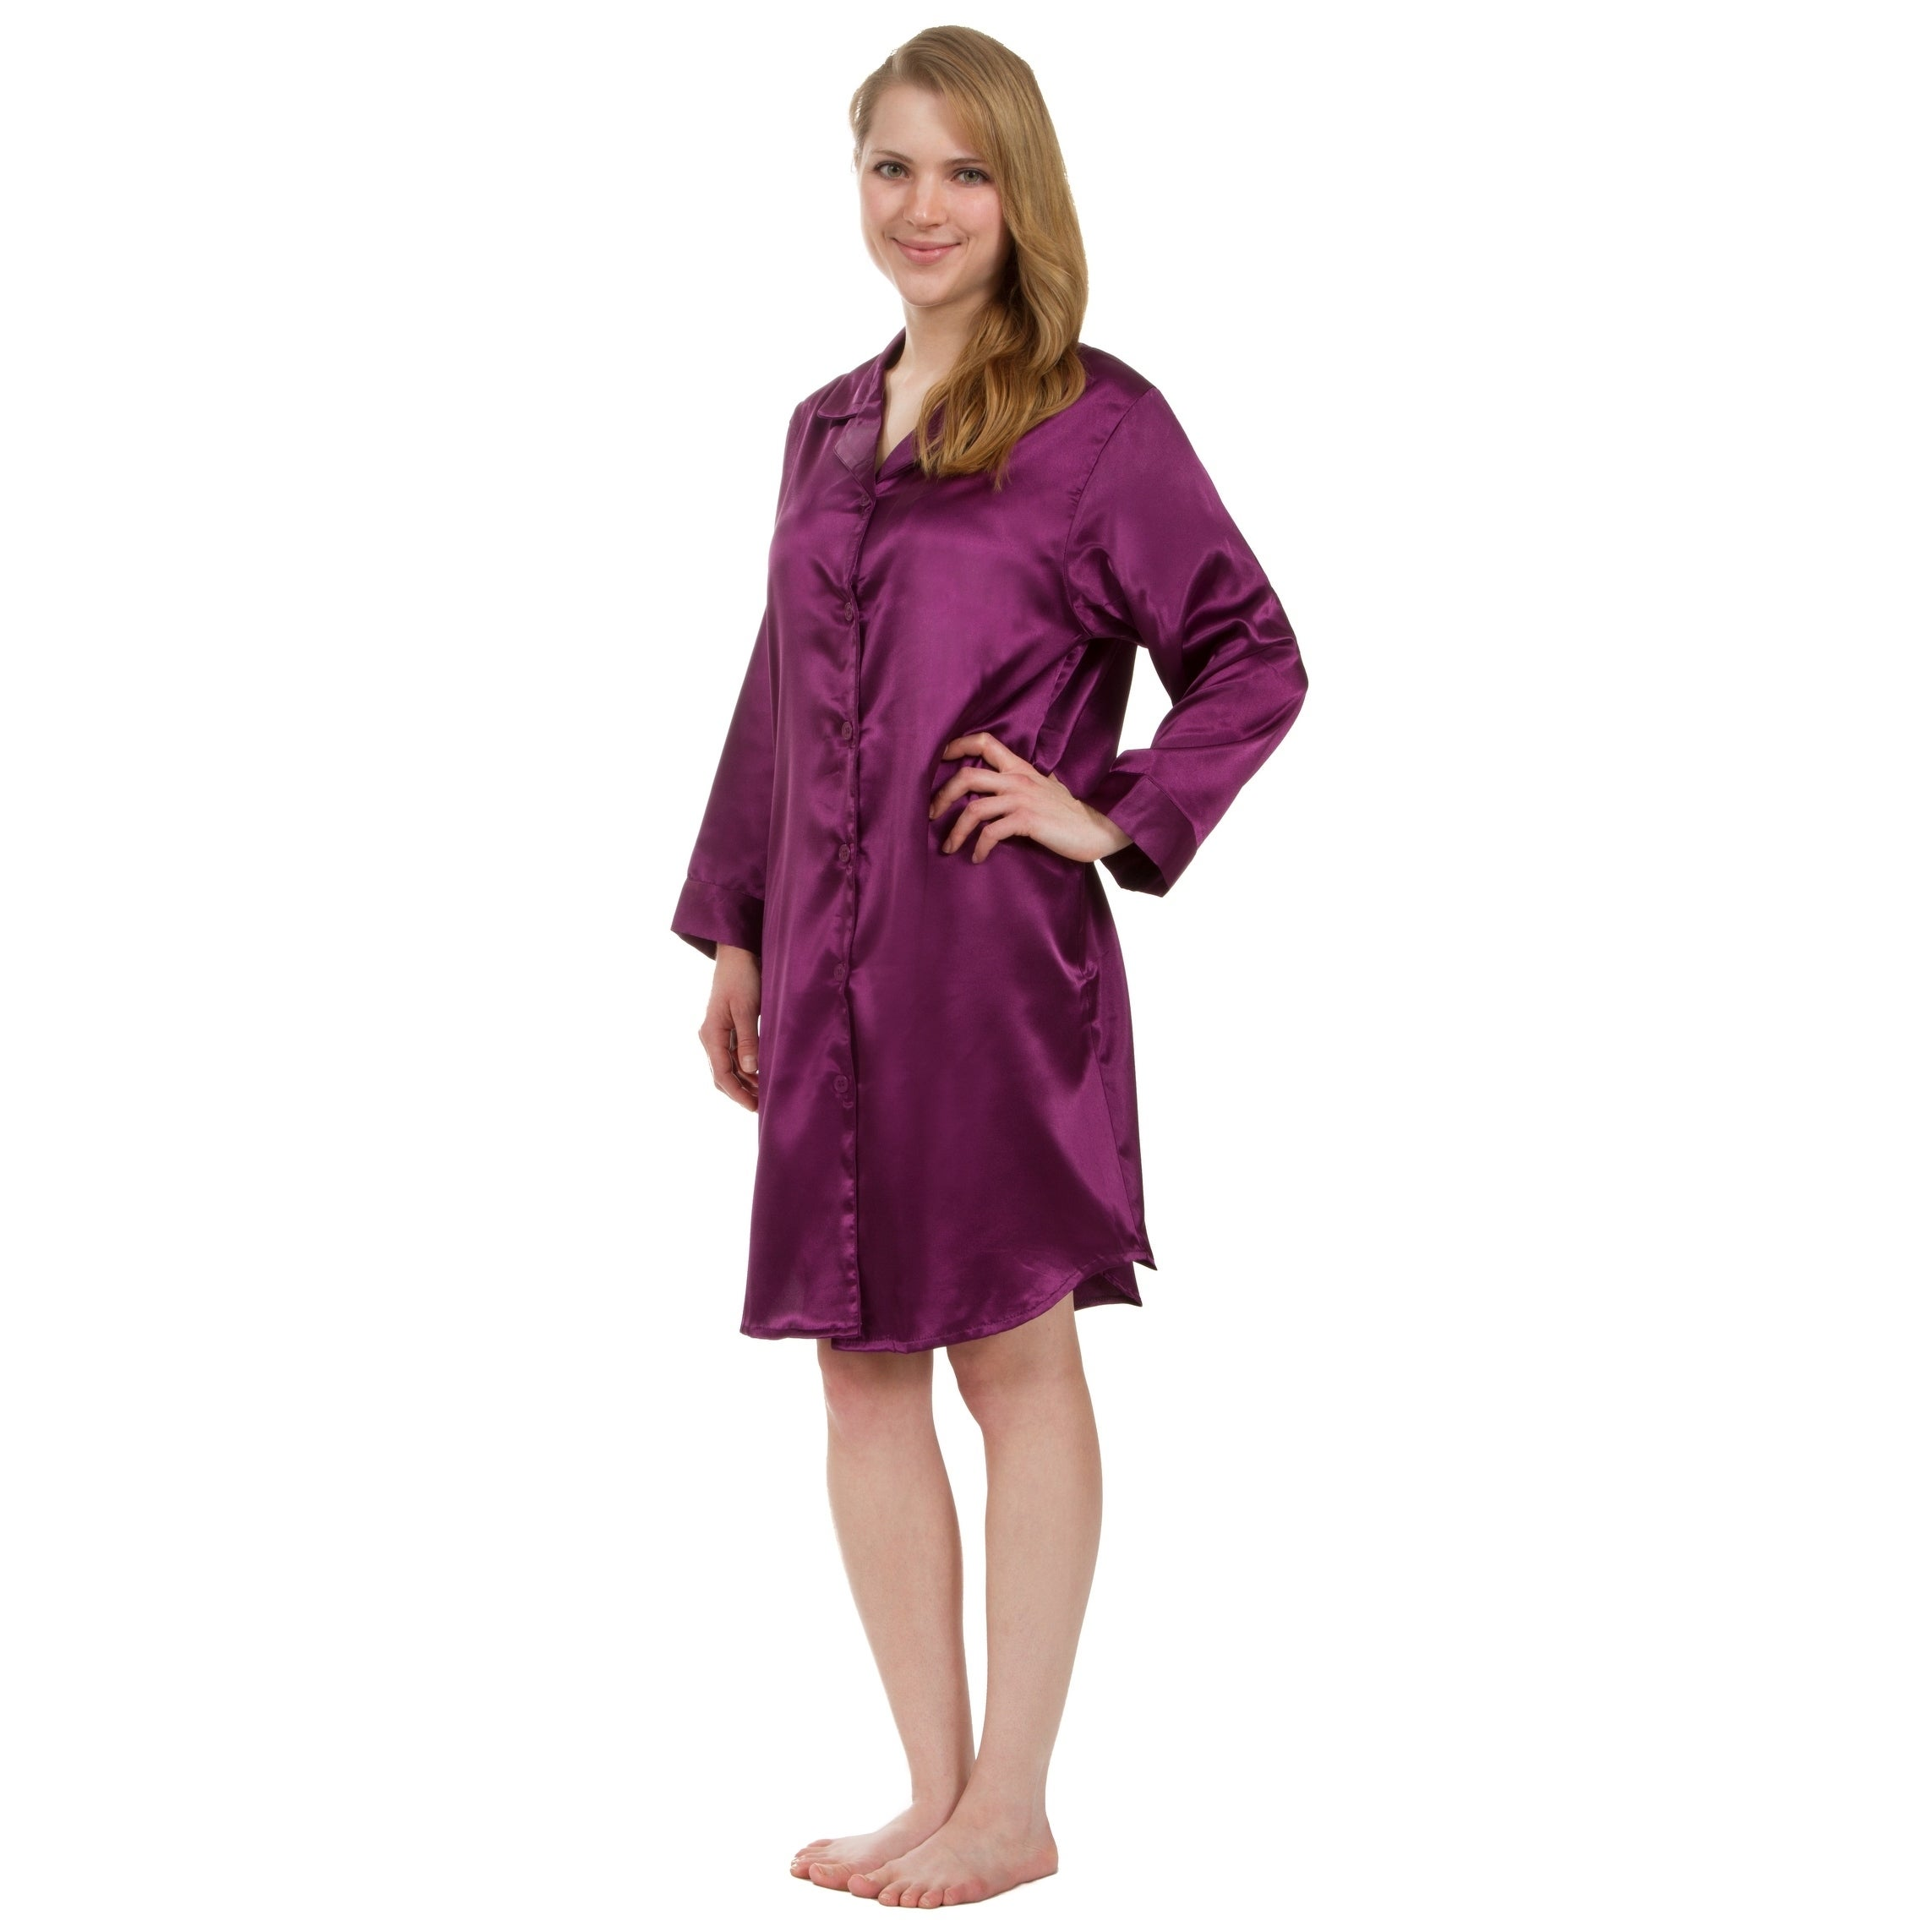 Shop Leisureland Stretch Satin Nightshirt Boyfriend Style Sleep Shirt -  Free Shipping On Orders Over  45 - Overstock - 18227817 2995b004f